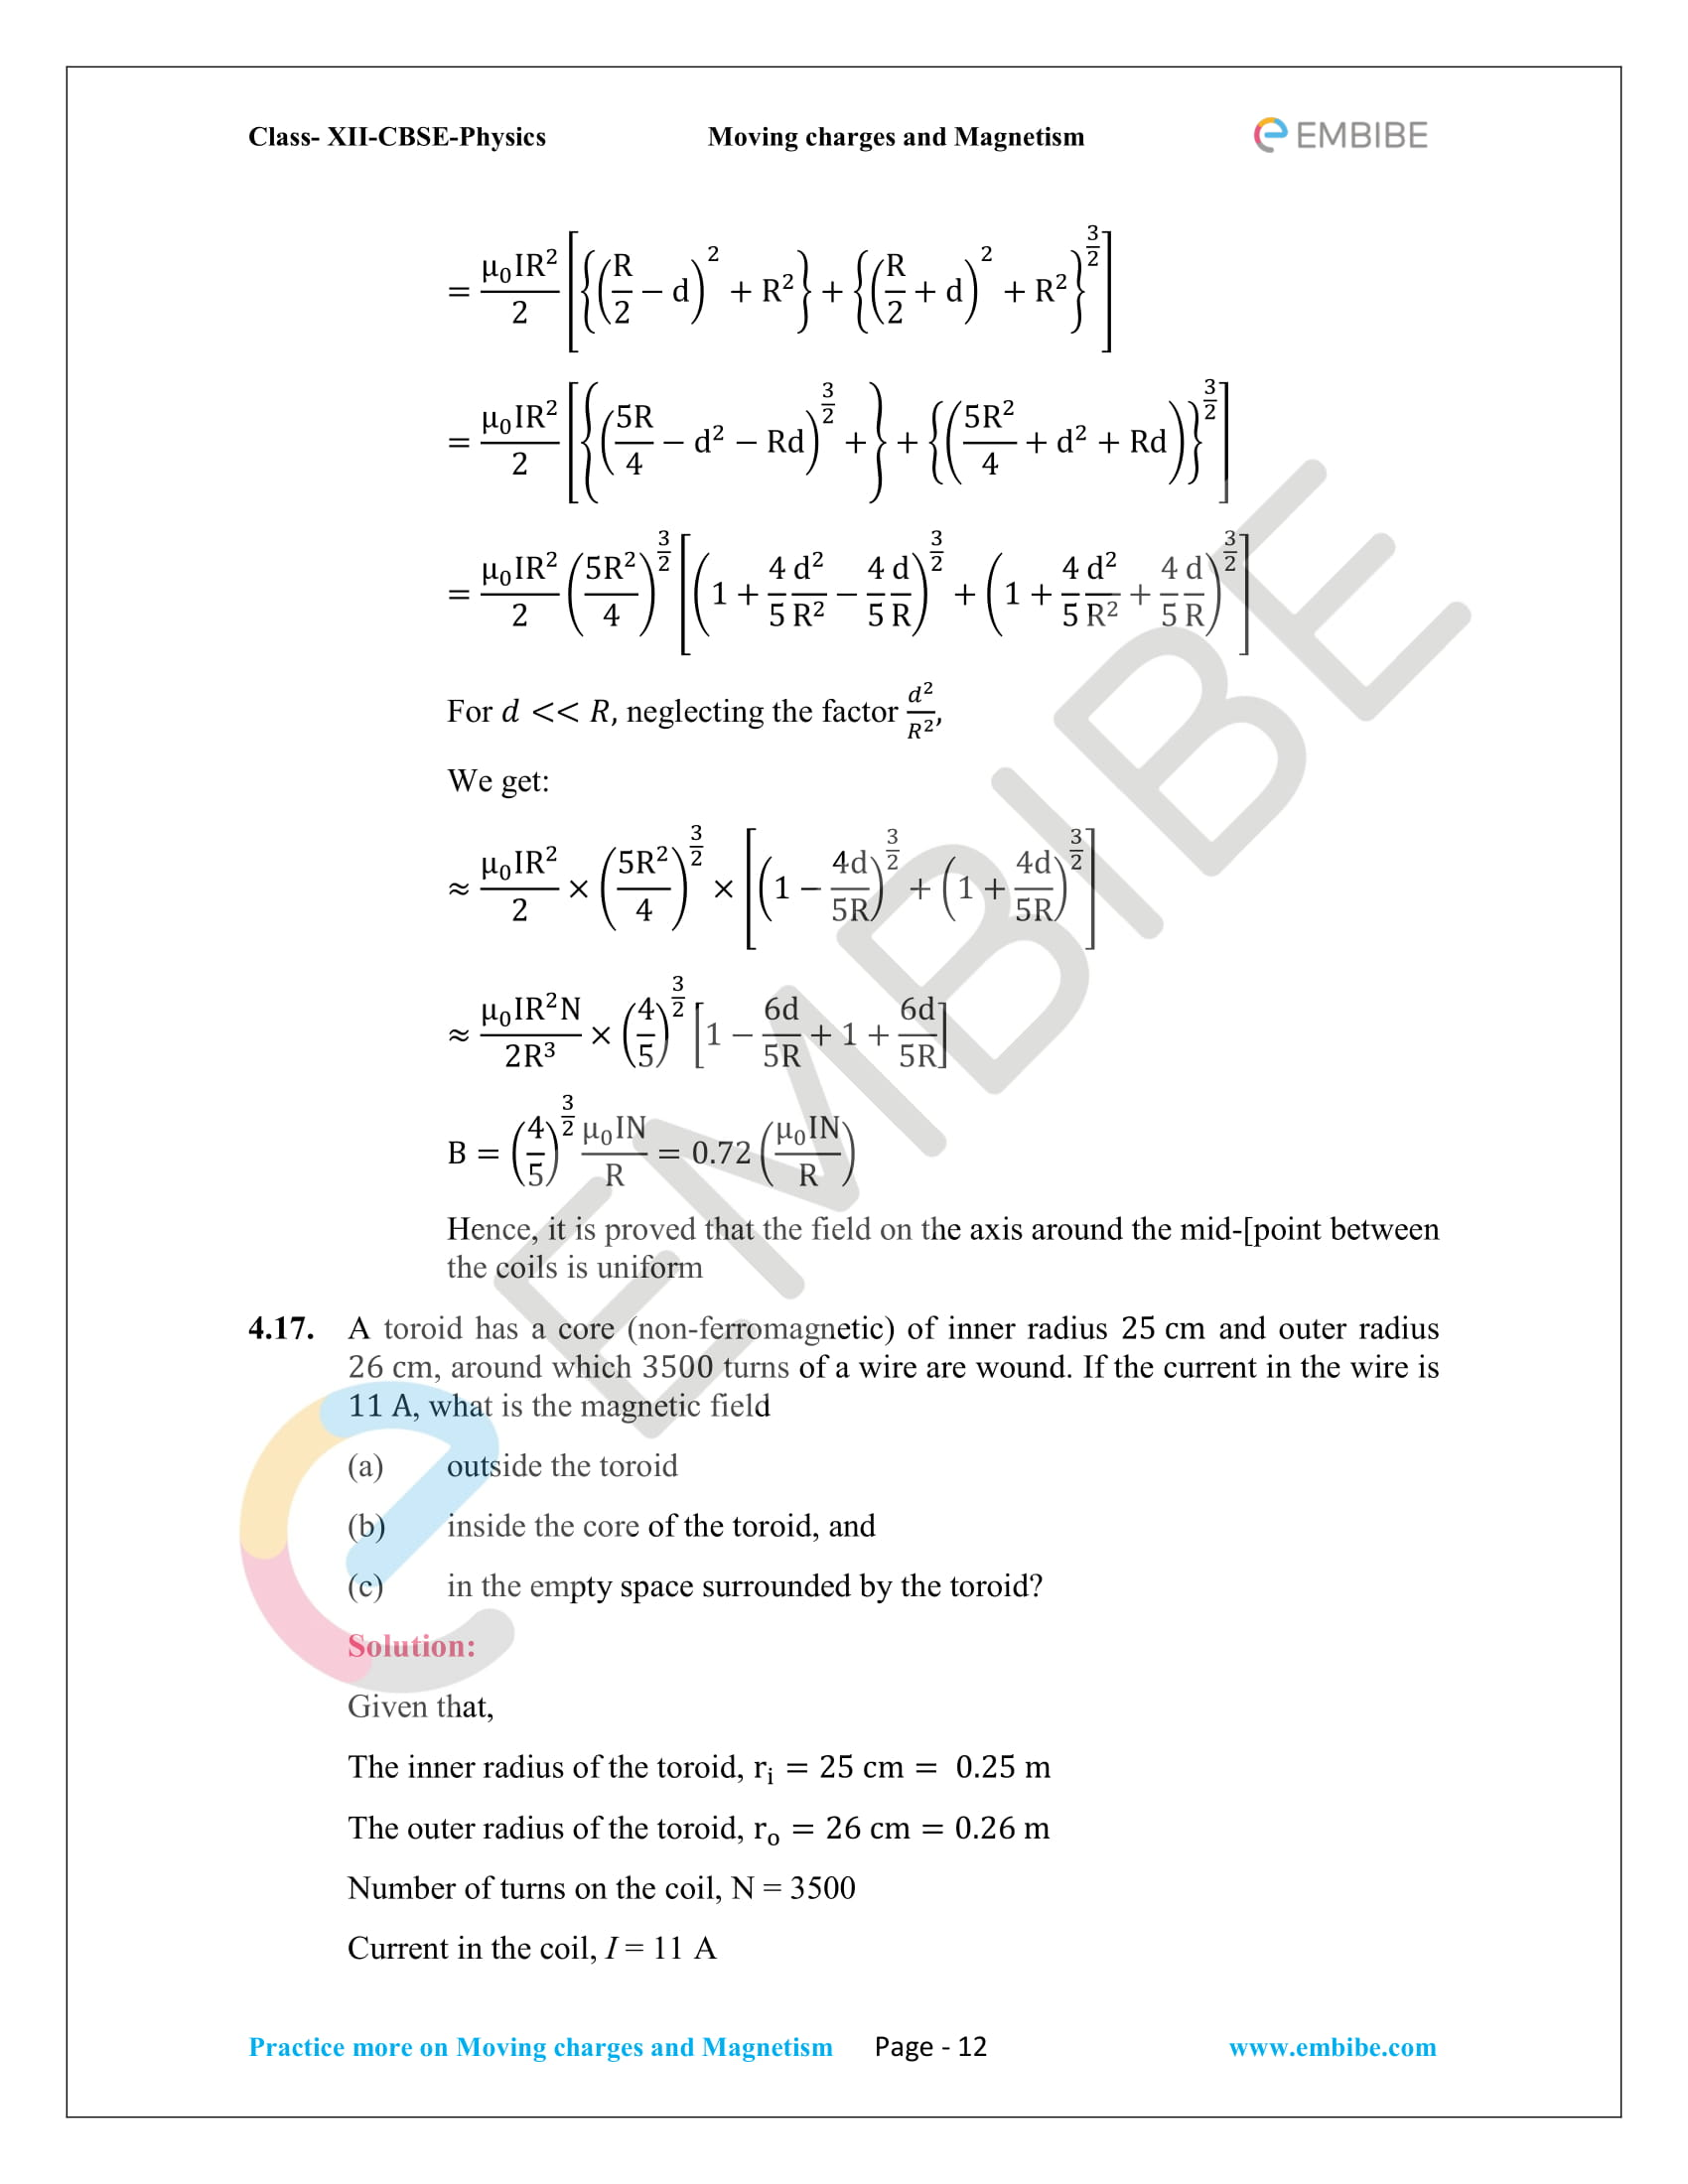 NCERT_Grade 12_Physics_Ch_04_Moving Charges and Magnetism-12